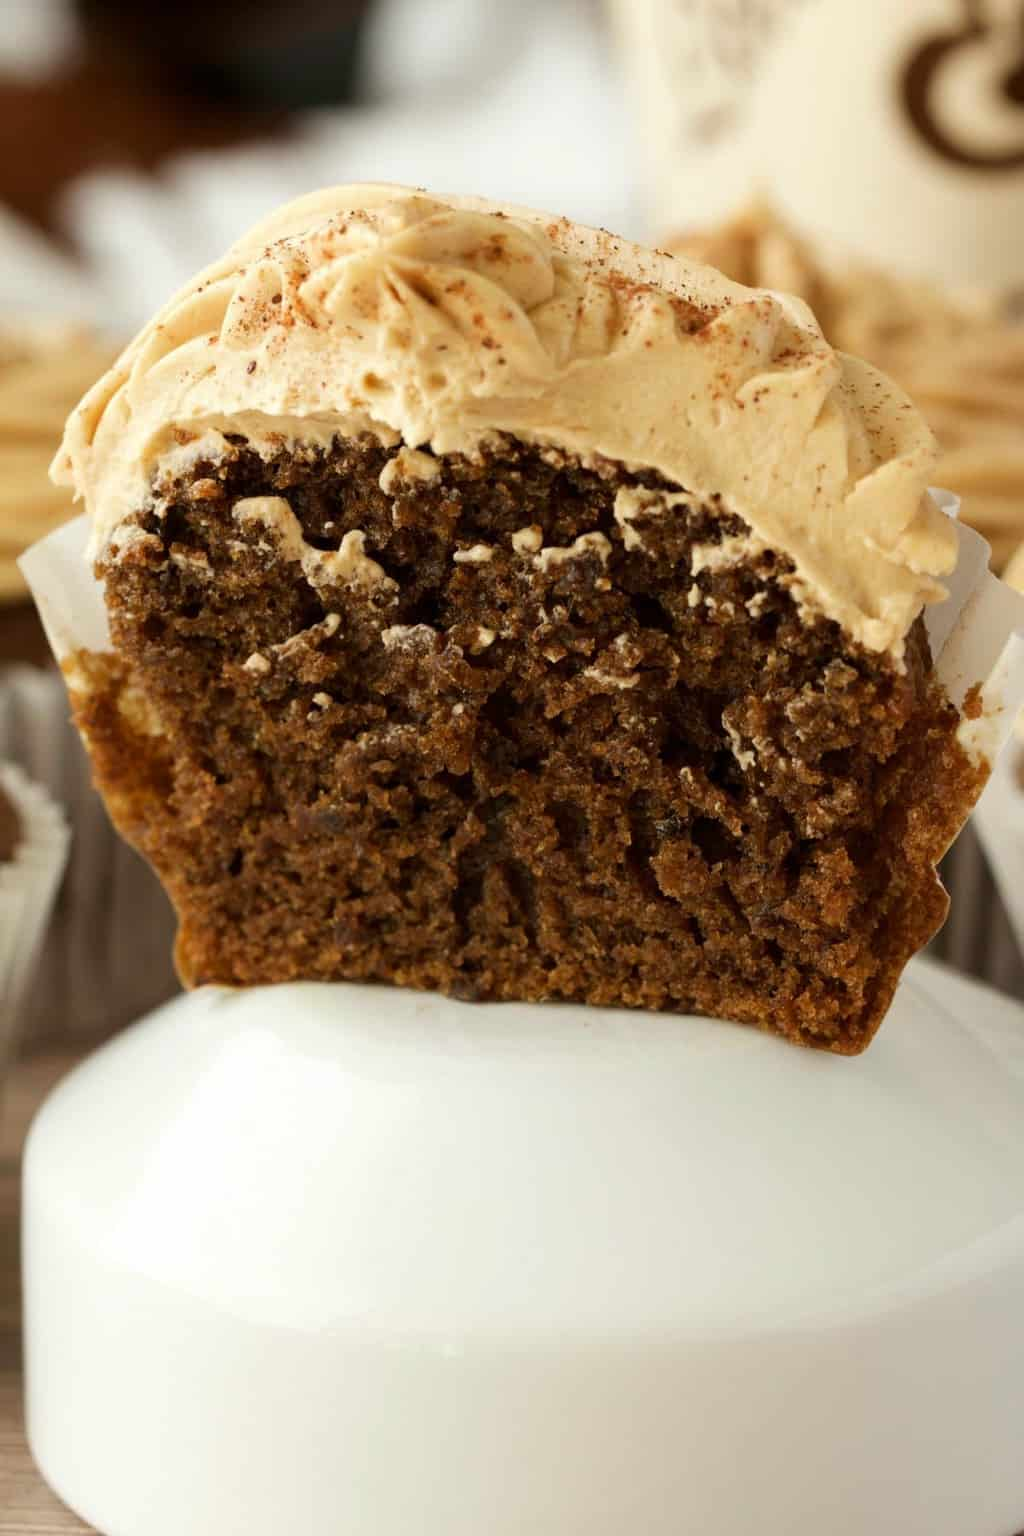 Vegan coffee cupcake cut in half to show the center.